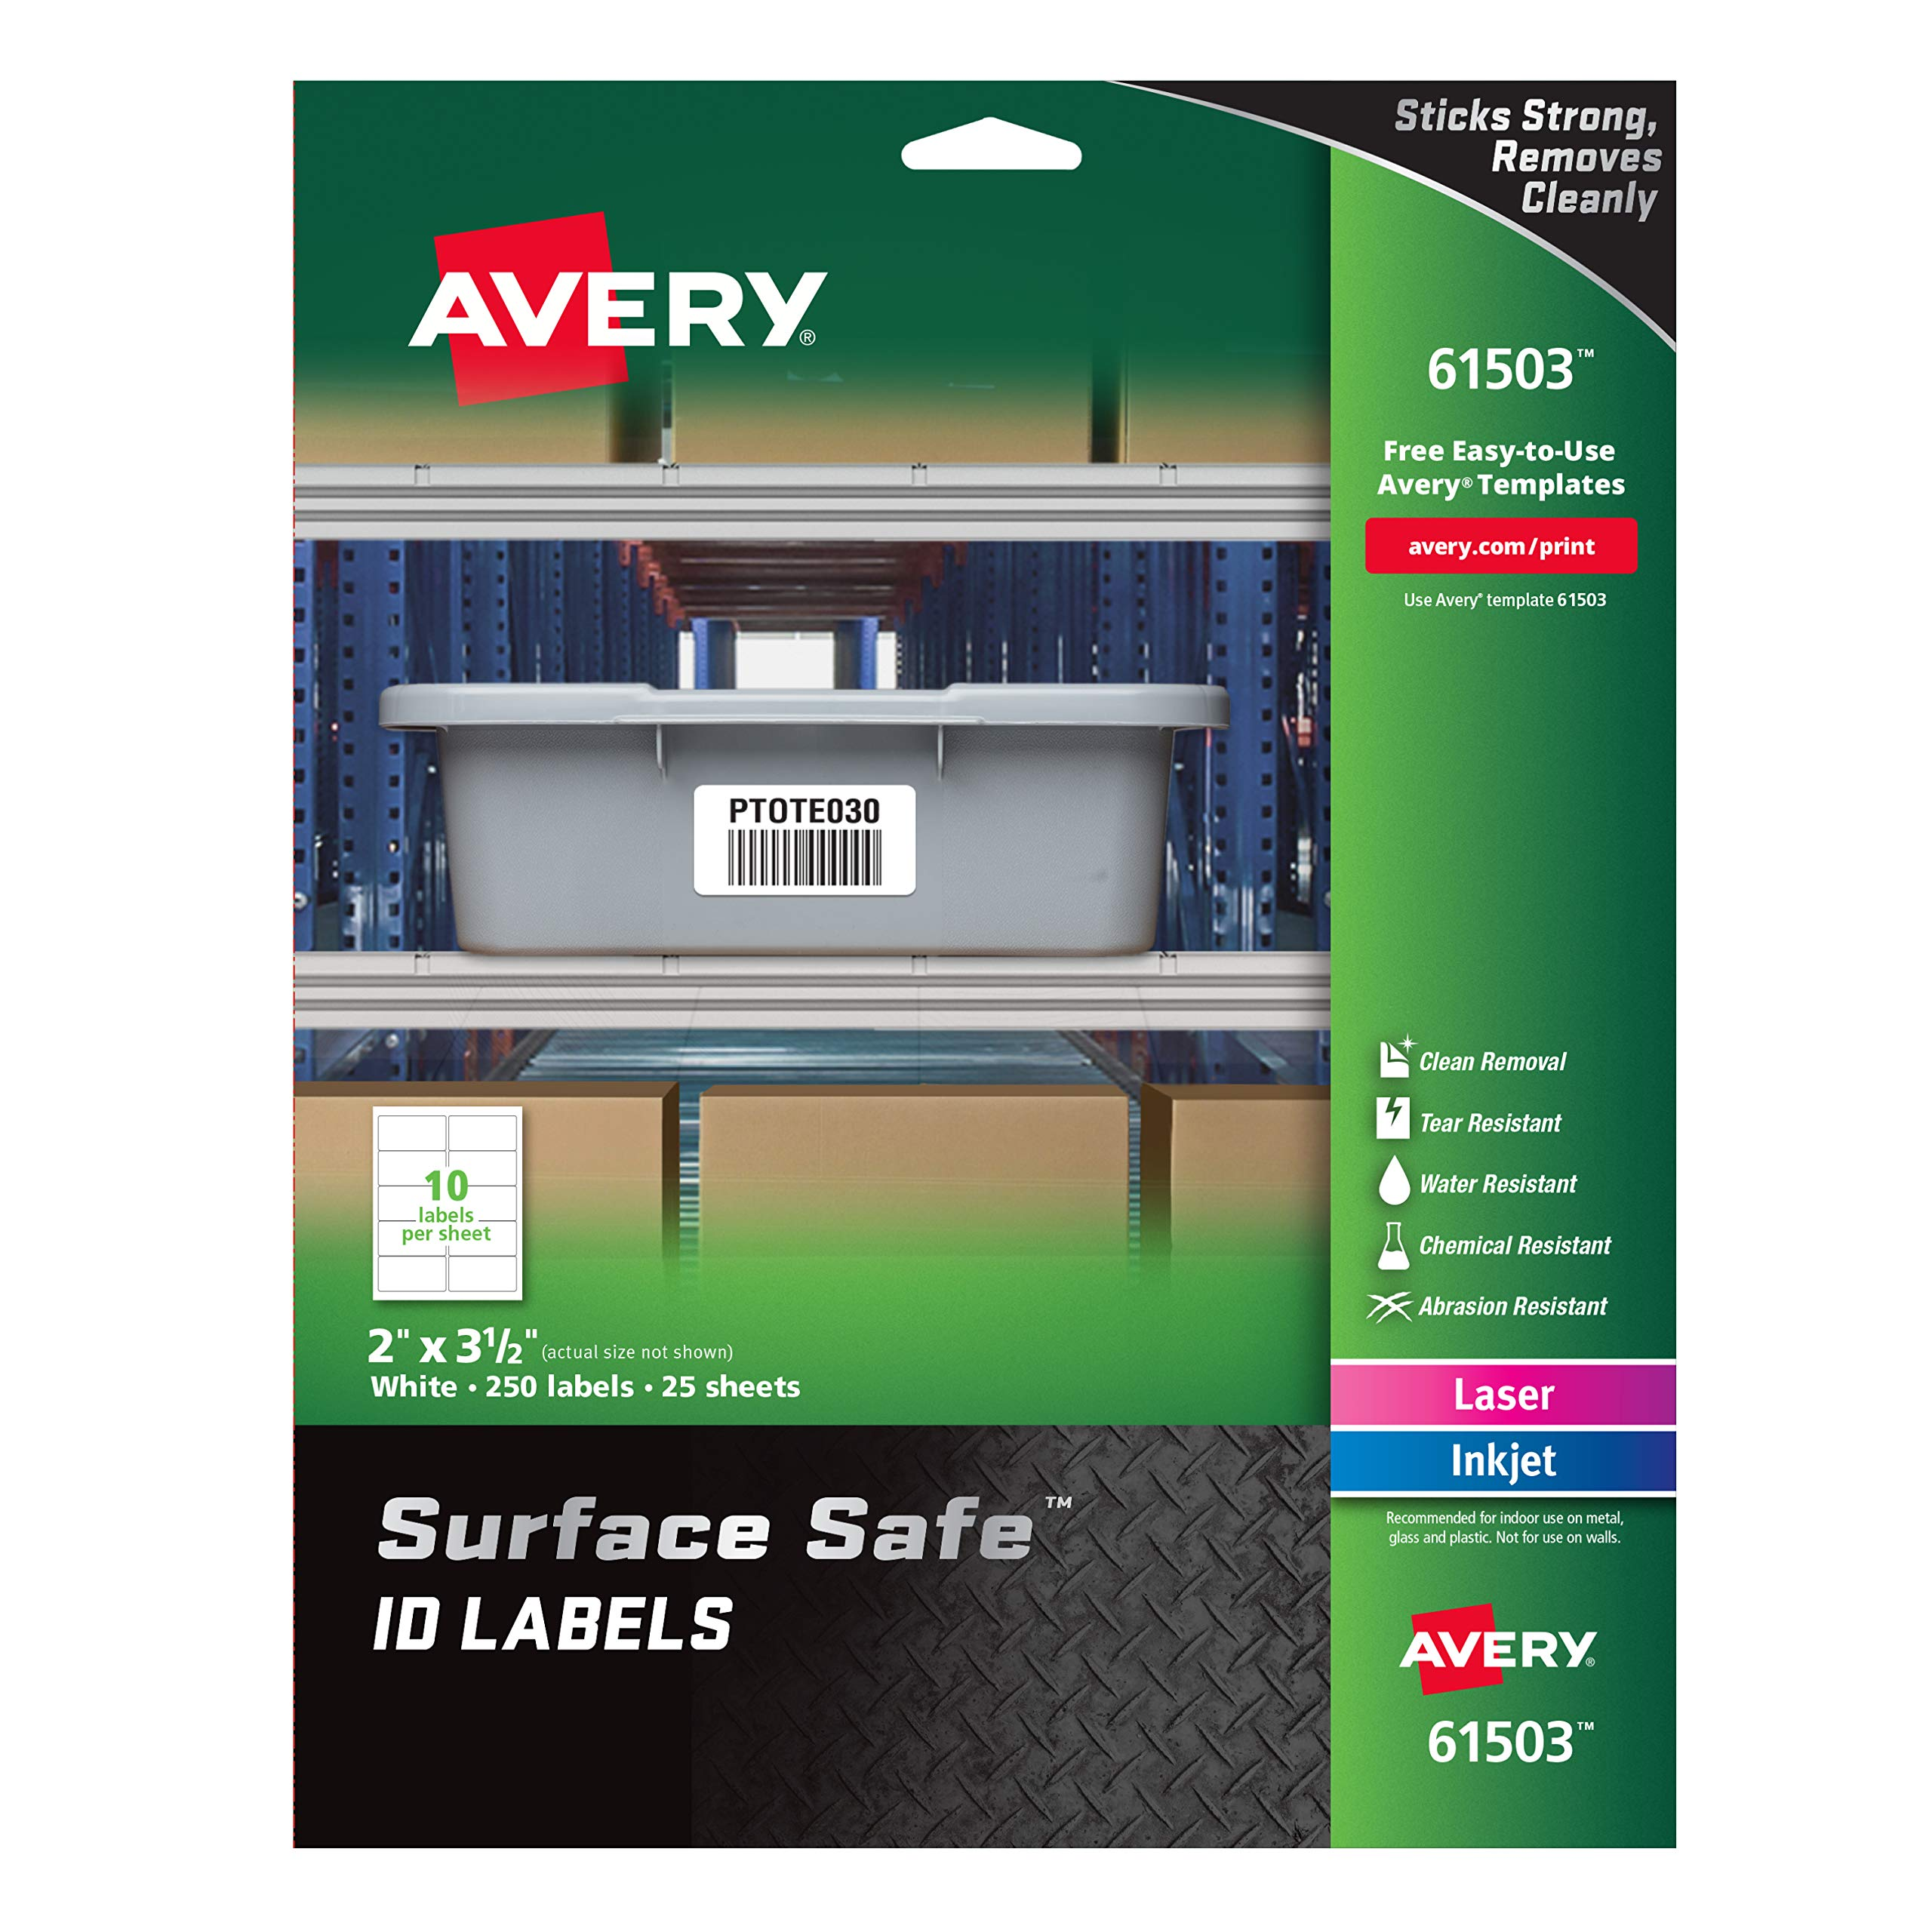 Avery Surface Safe Durable ID Labels, Removable Adhesive, Water Resistant, 2'' x 3-1/2'', 250 Labels (61503) by AVERY